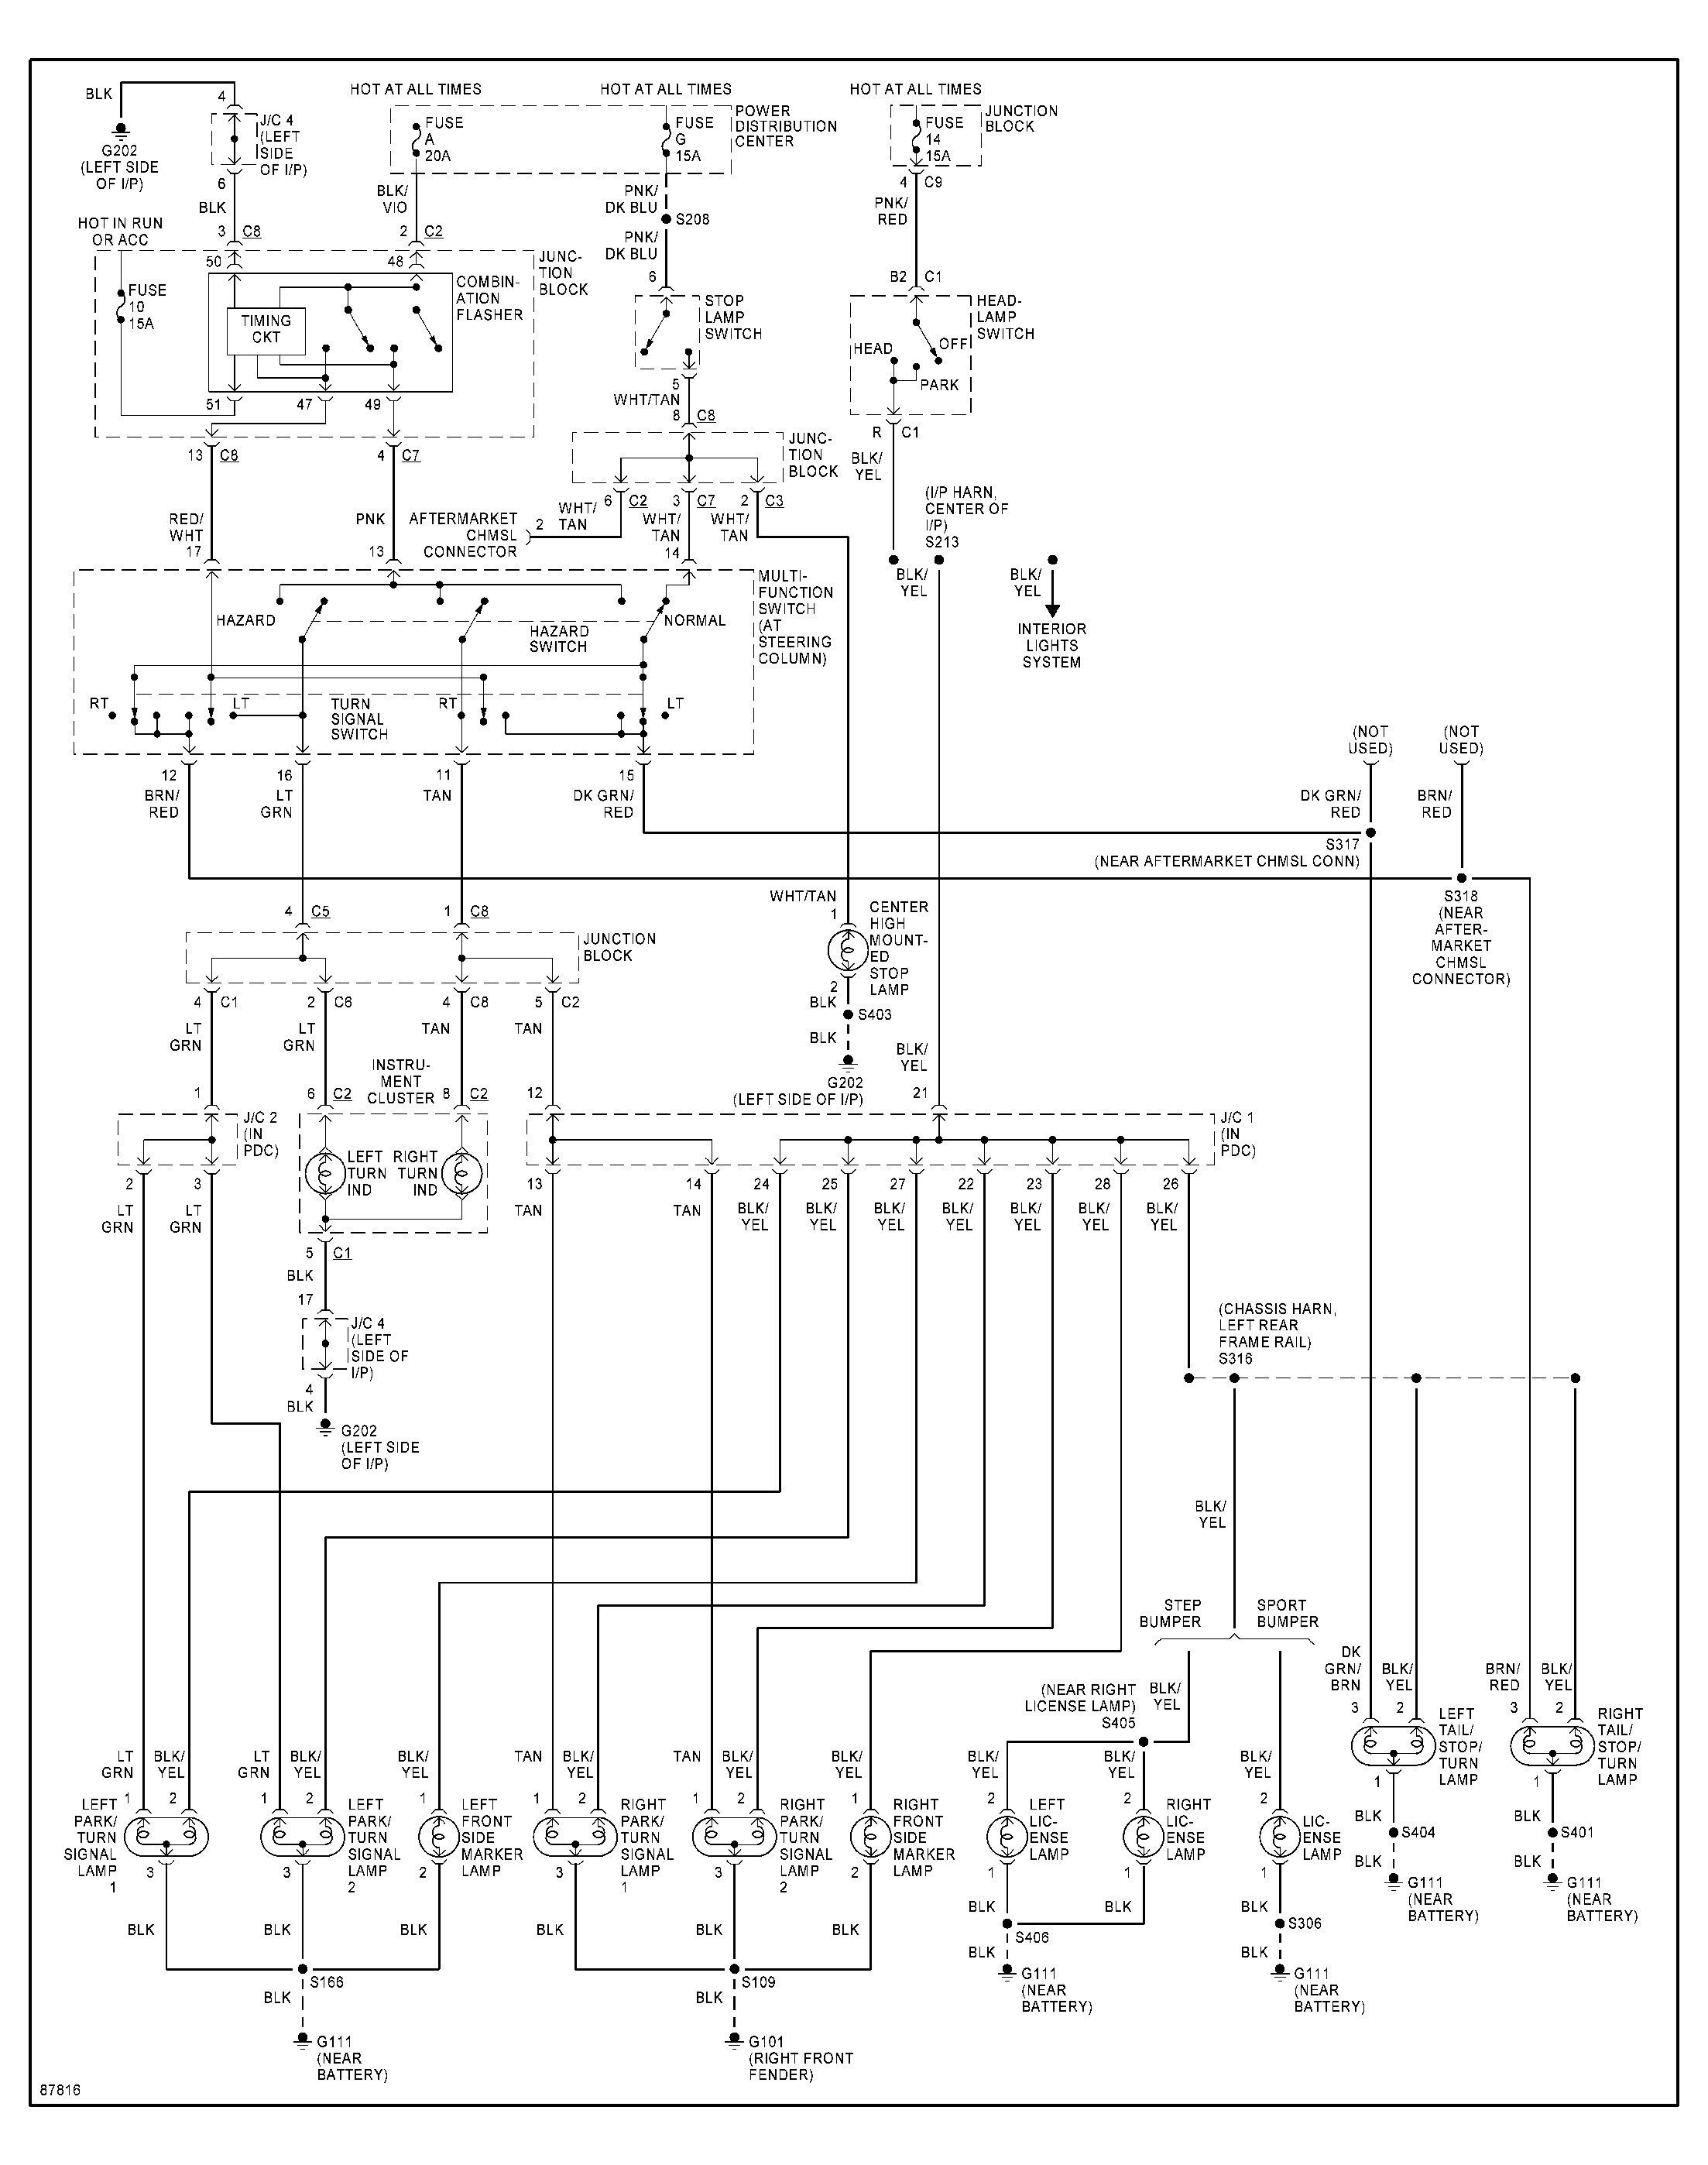 Wiring Diagram 1997 Dodge Ram 1500 -S13 Sr20det Wiring Diagram | Begeboy  Wiring Diagram Source | 2015 Ford Escape Wiring Cdc35 |  | Bege Wiring Diagram - Begeboy Wiring Diagram Source